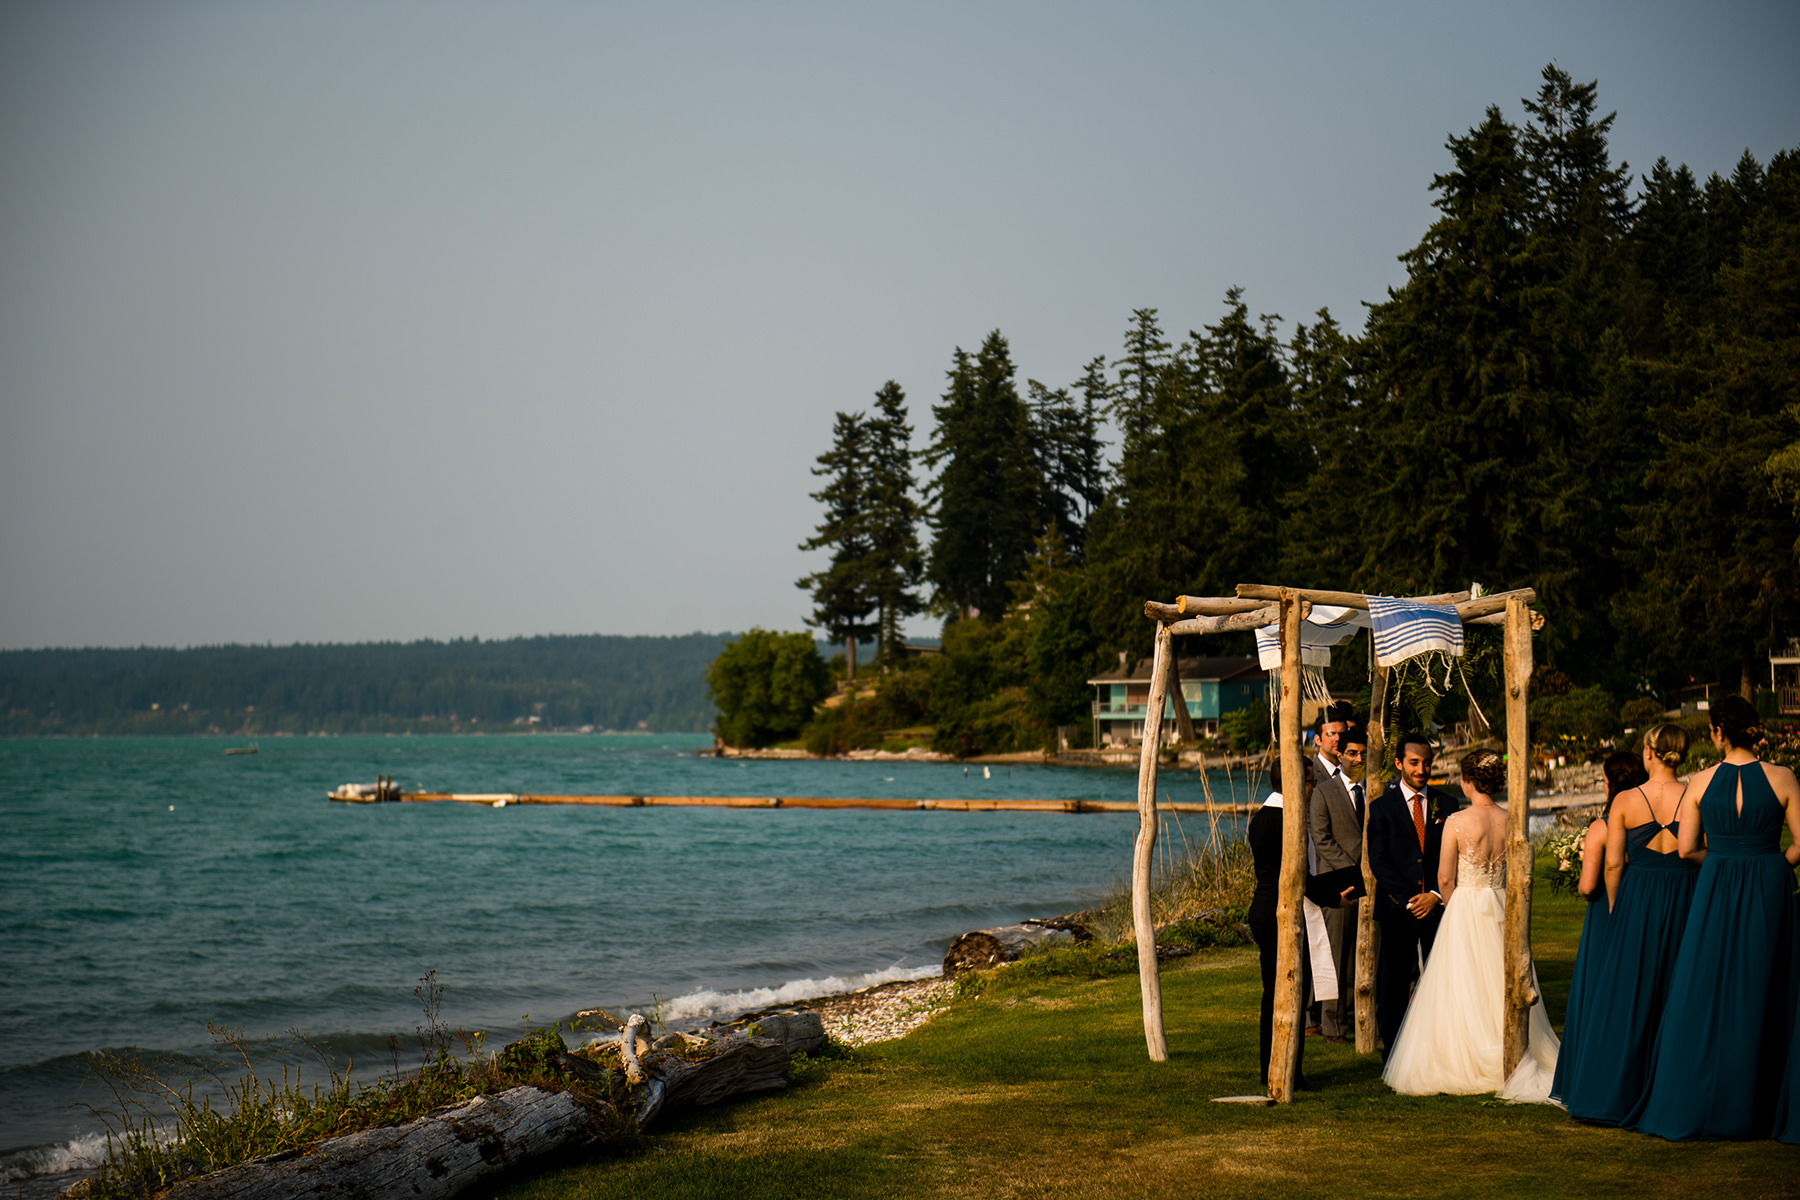 kitsap waterfront wedding ceremony